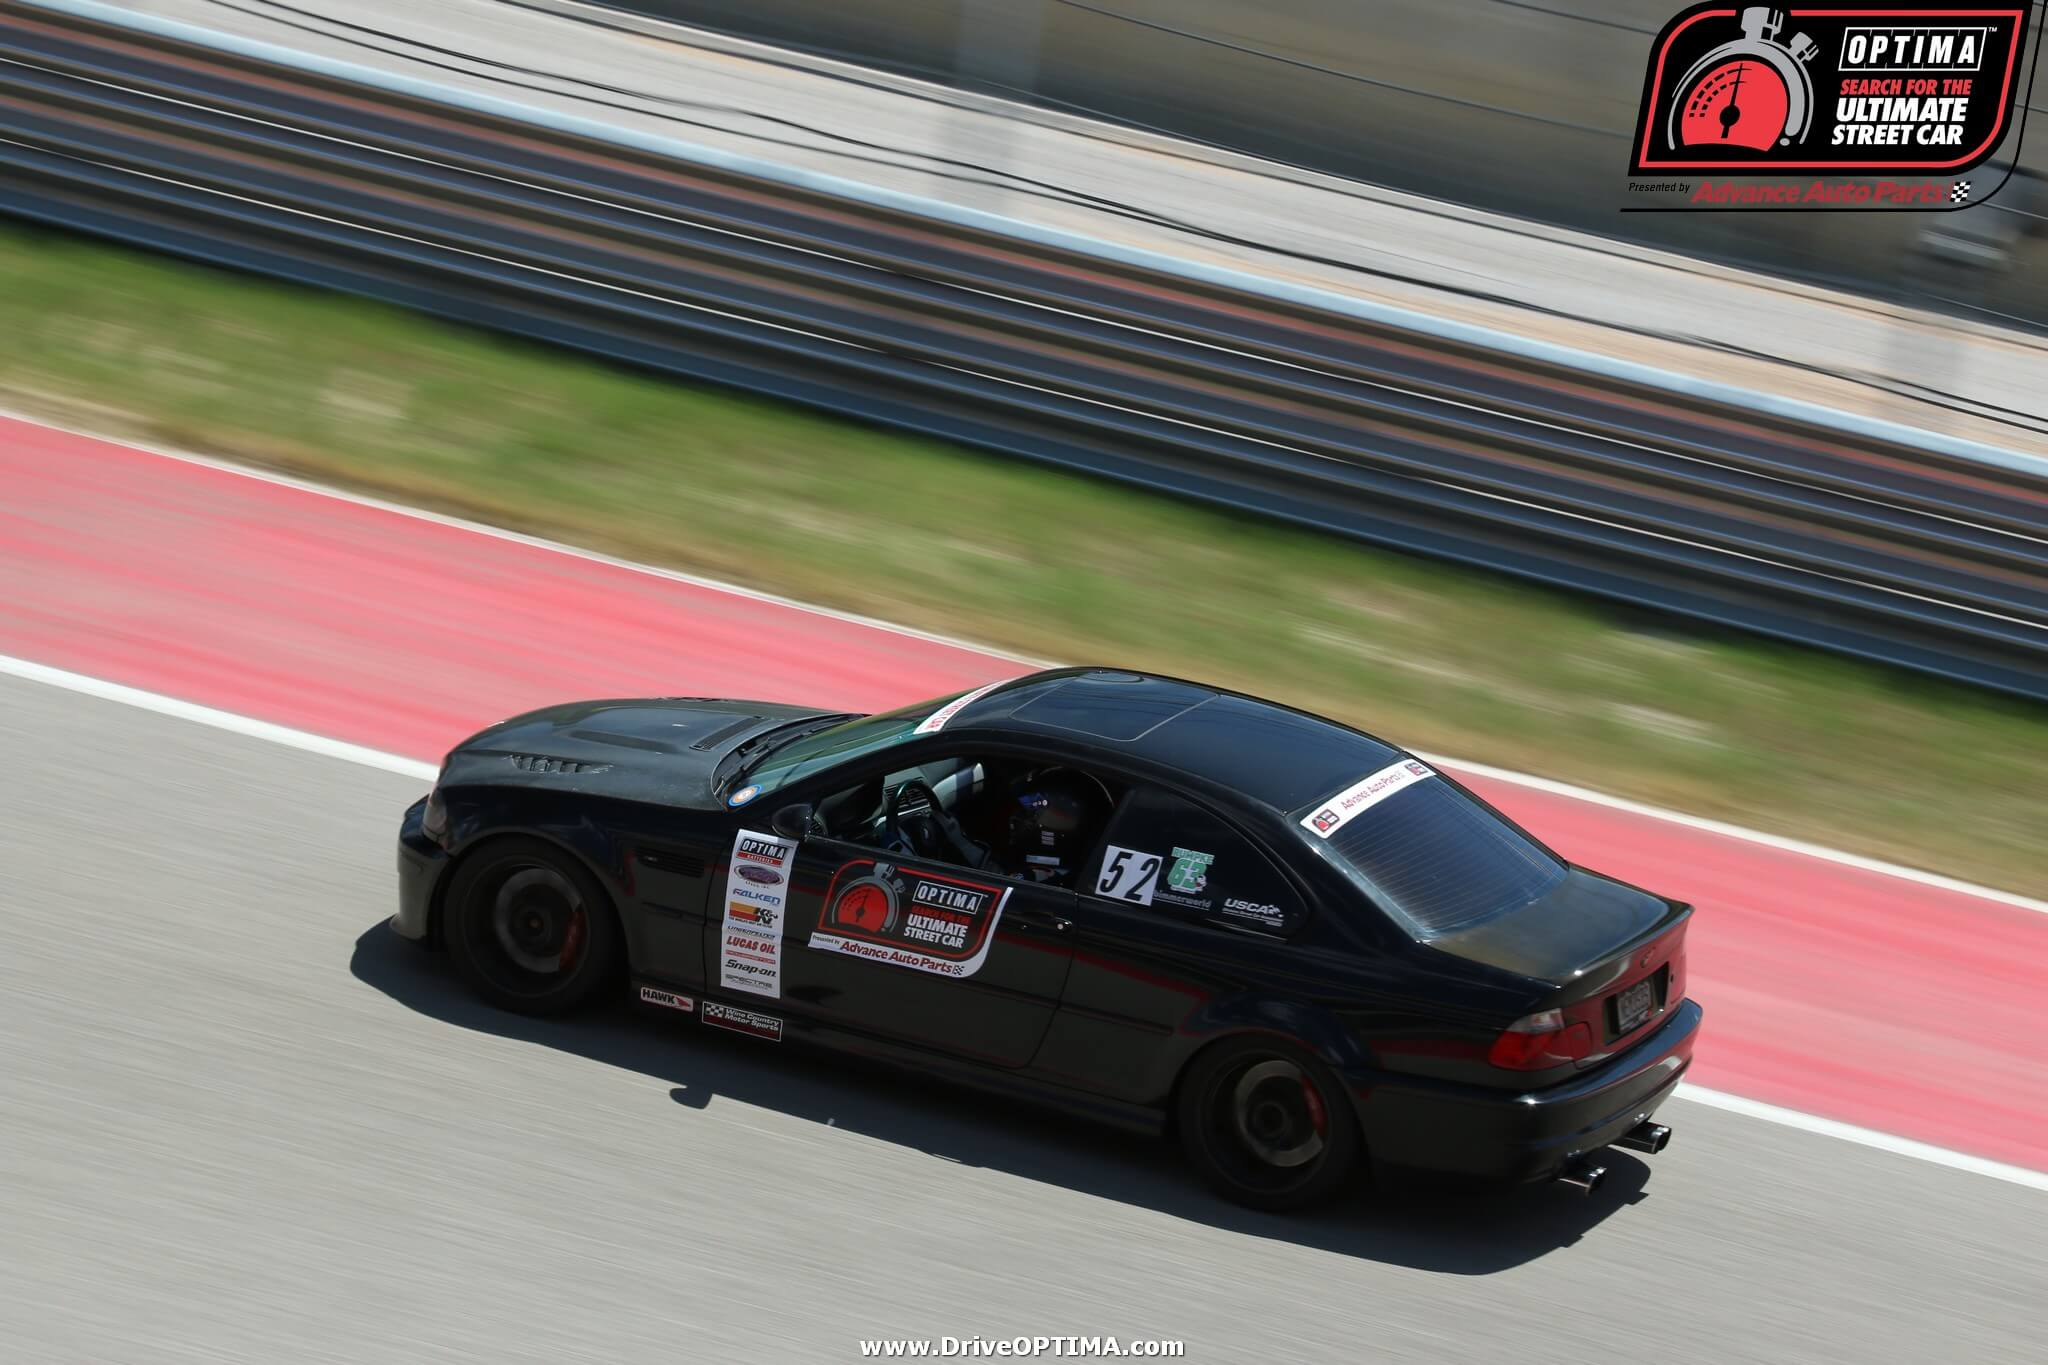 Bruce-Drachmeister-2002-BMW-M3-DriveOPTIMA-Circuit-of-the-Americas-2016_11